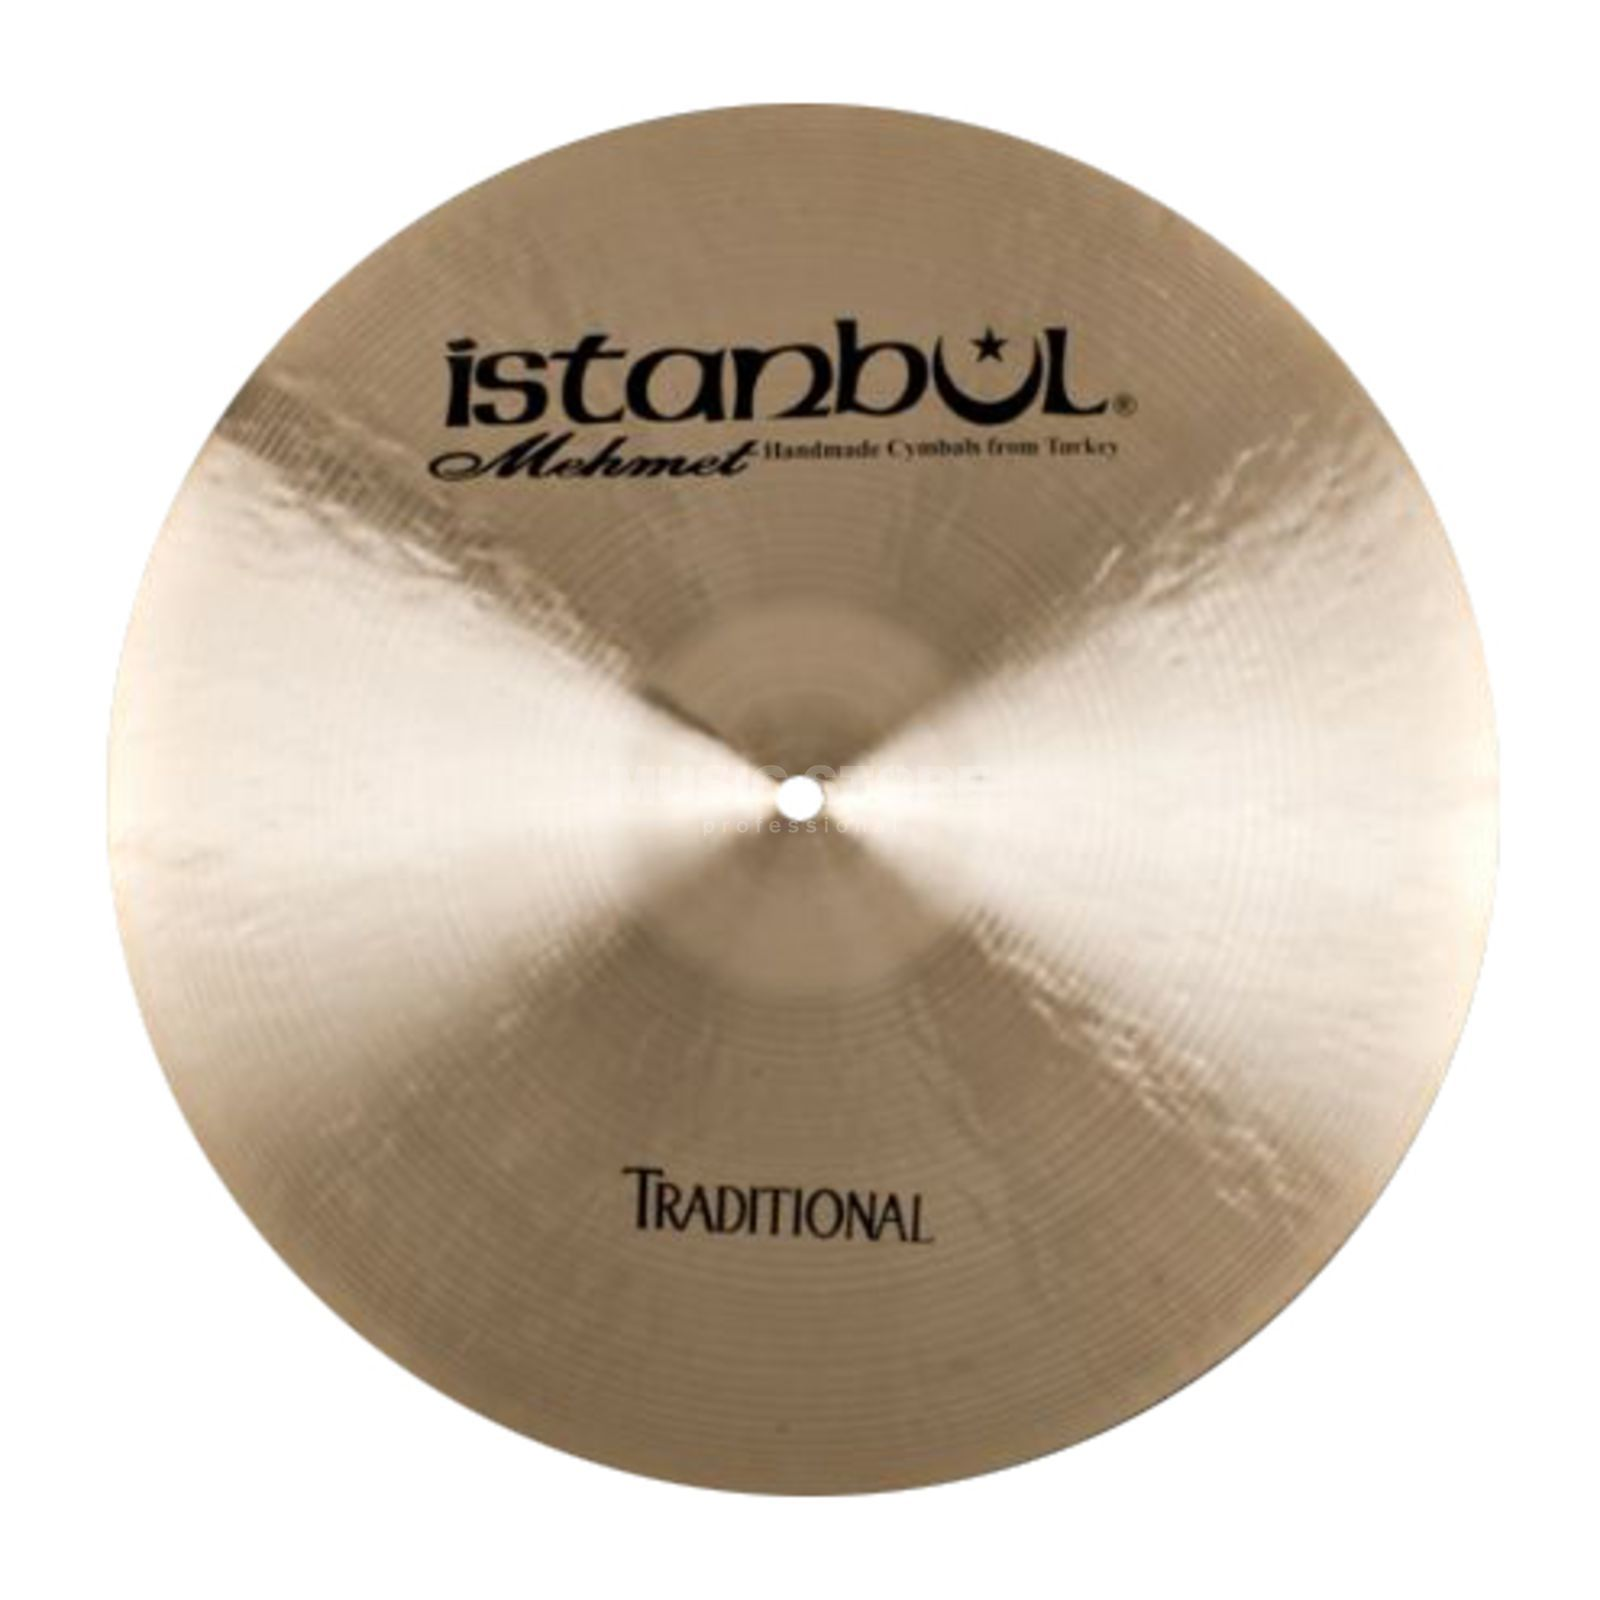 "Istanbul Traditional Heavy Crash 15"", CVY16 Produktbillede"